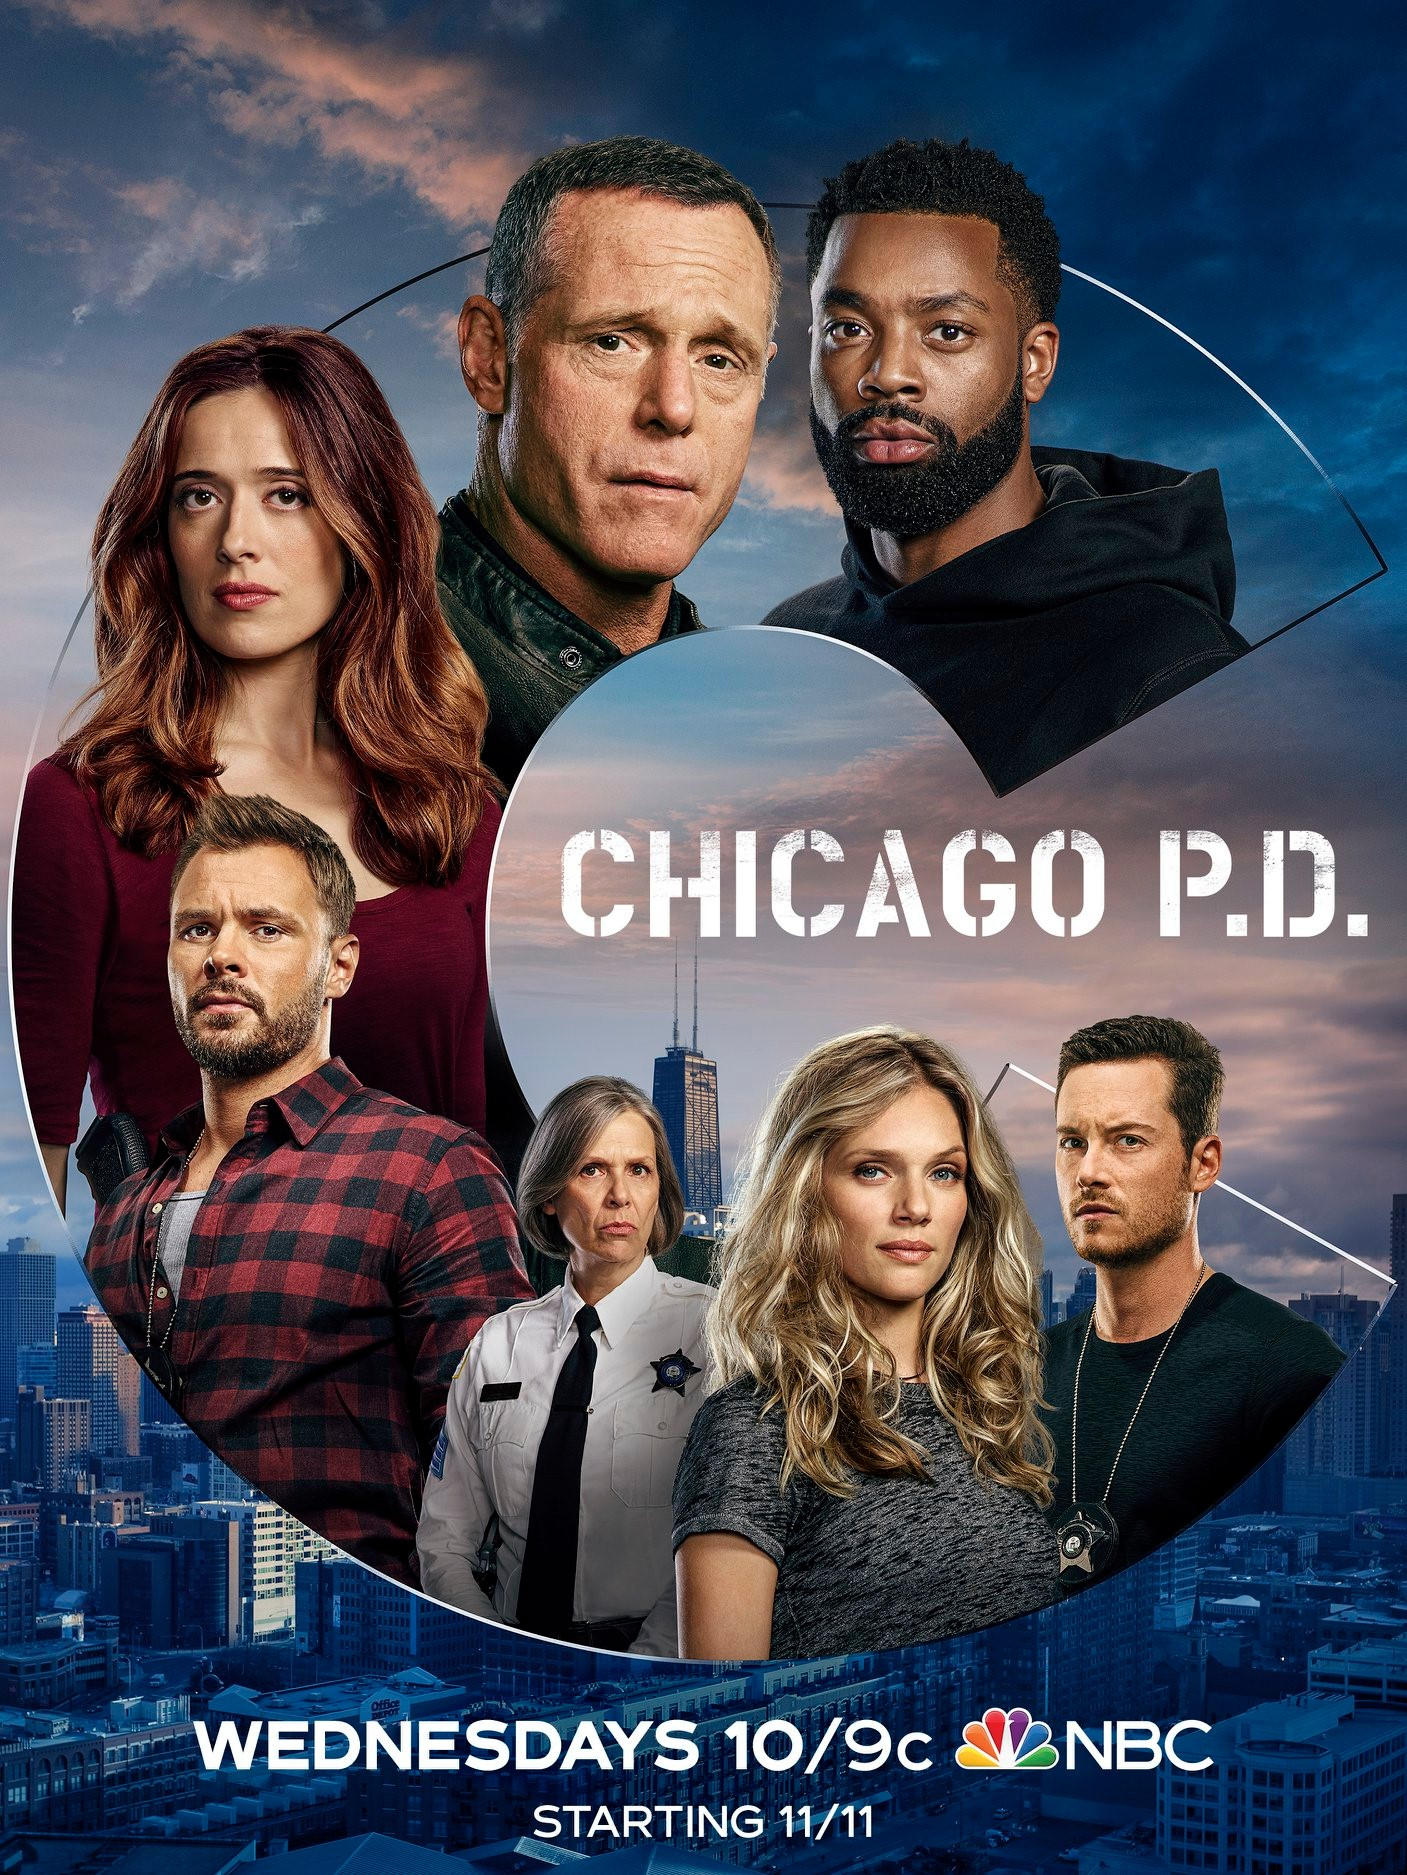 Chicago P.D. Season 8 Episode 4 - Unforgiven